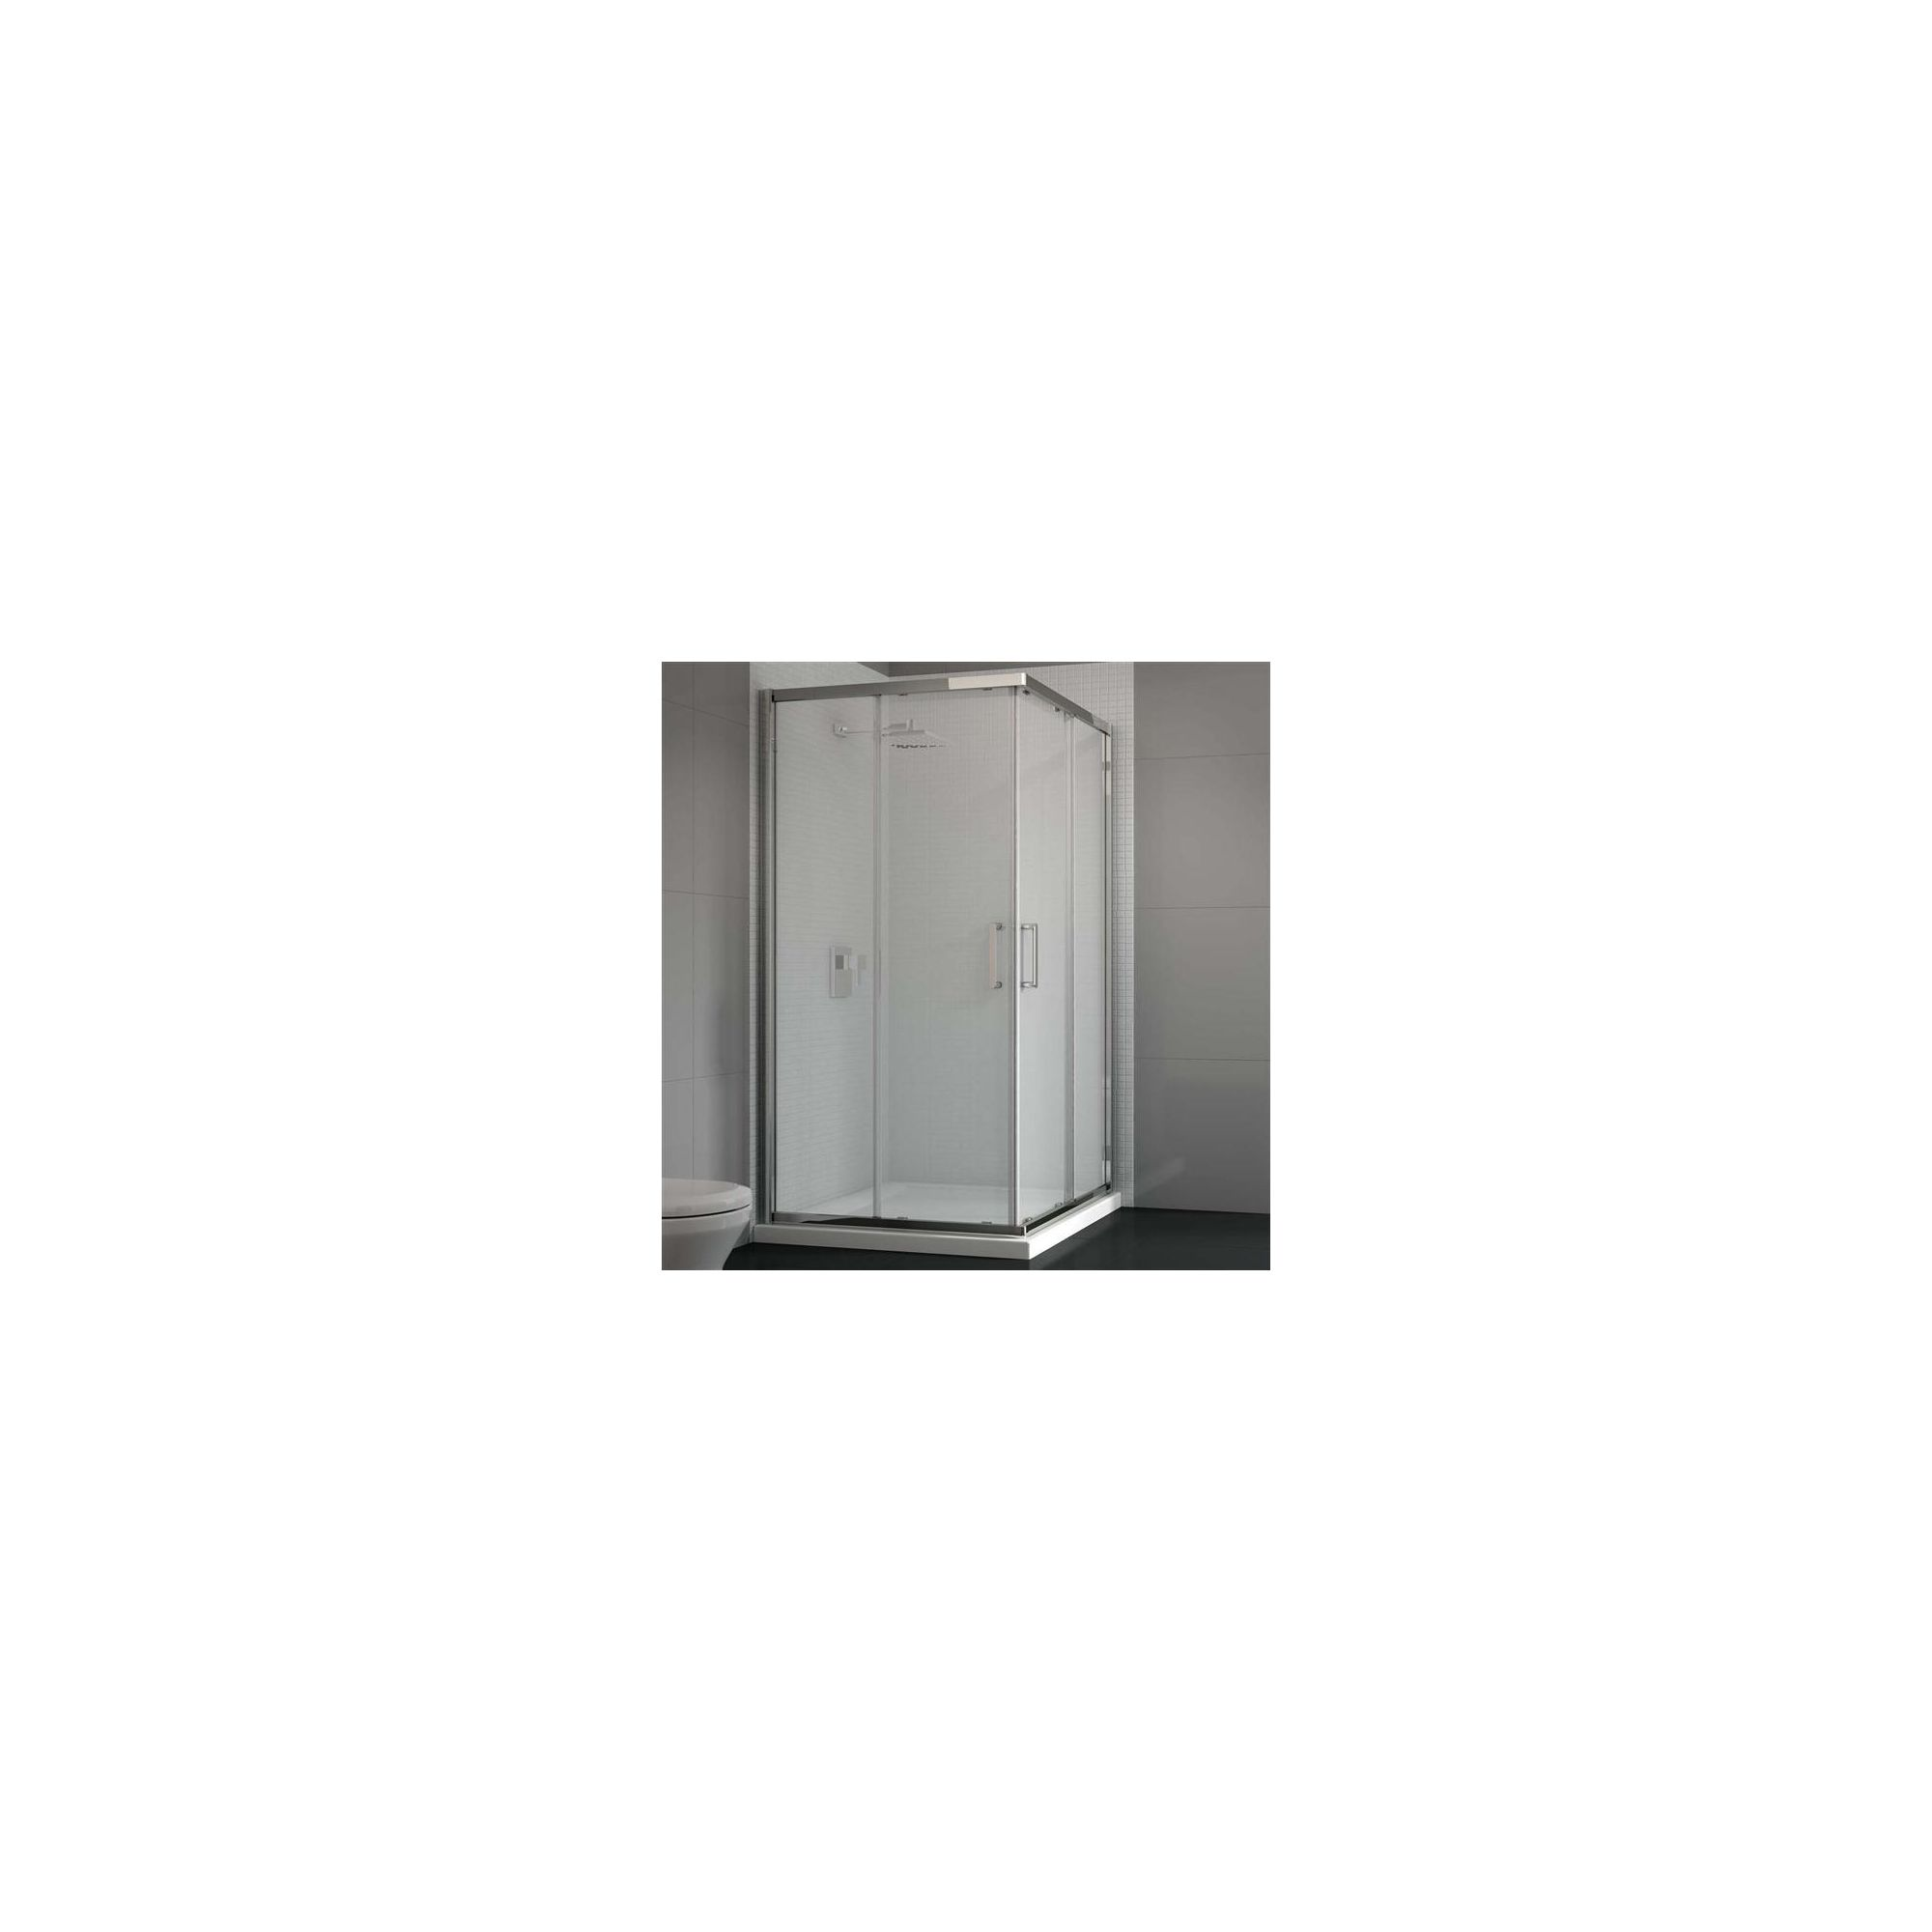 Merlyn Vivid Six Corner Entry Shower Enclosure, 900mm x 900mm, Low Profile Tray, 6mm Glass at Tesco Direct